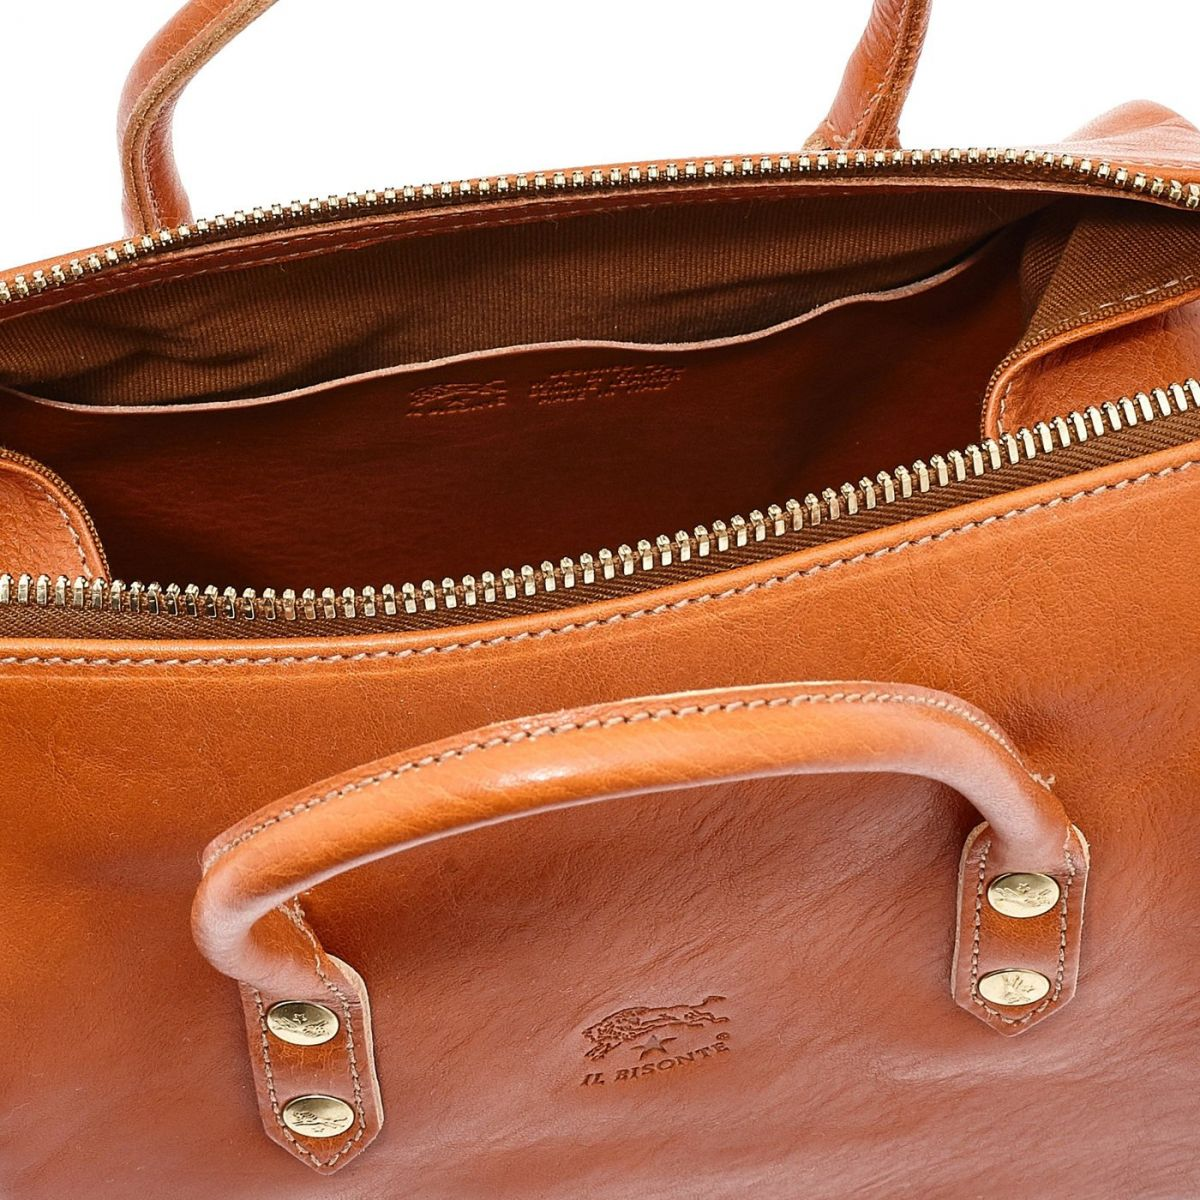 Women's Handbag Pratolino in Cowhide Double Leather BTH049 color Caramel | Details